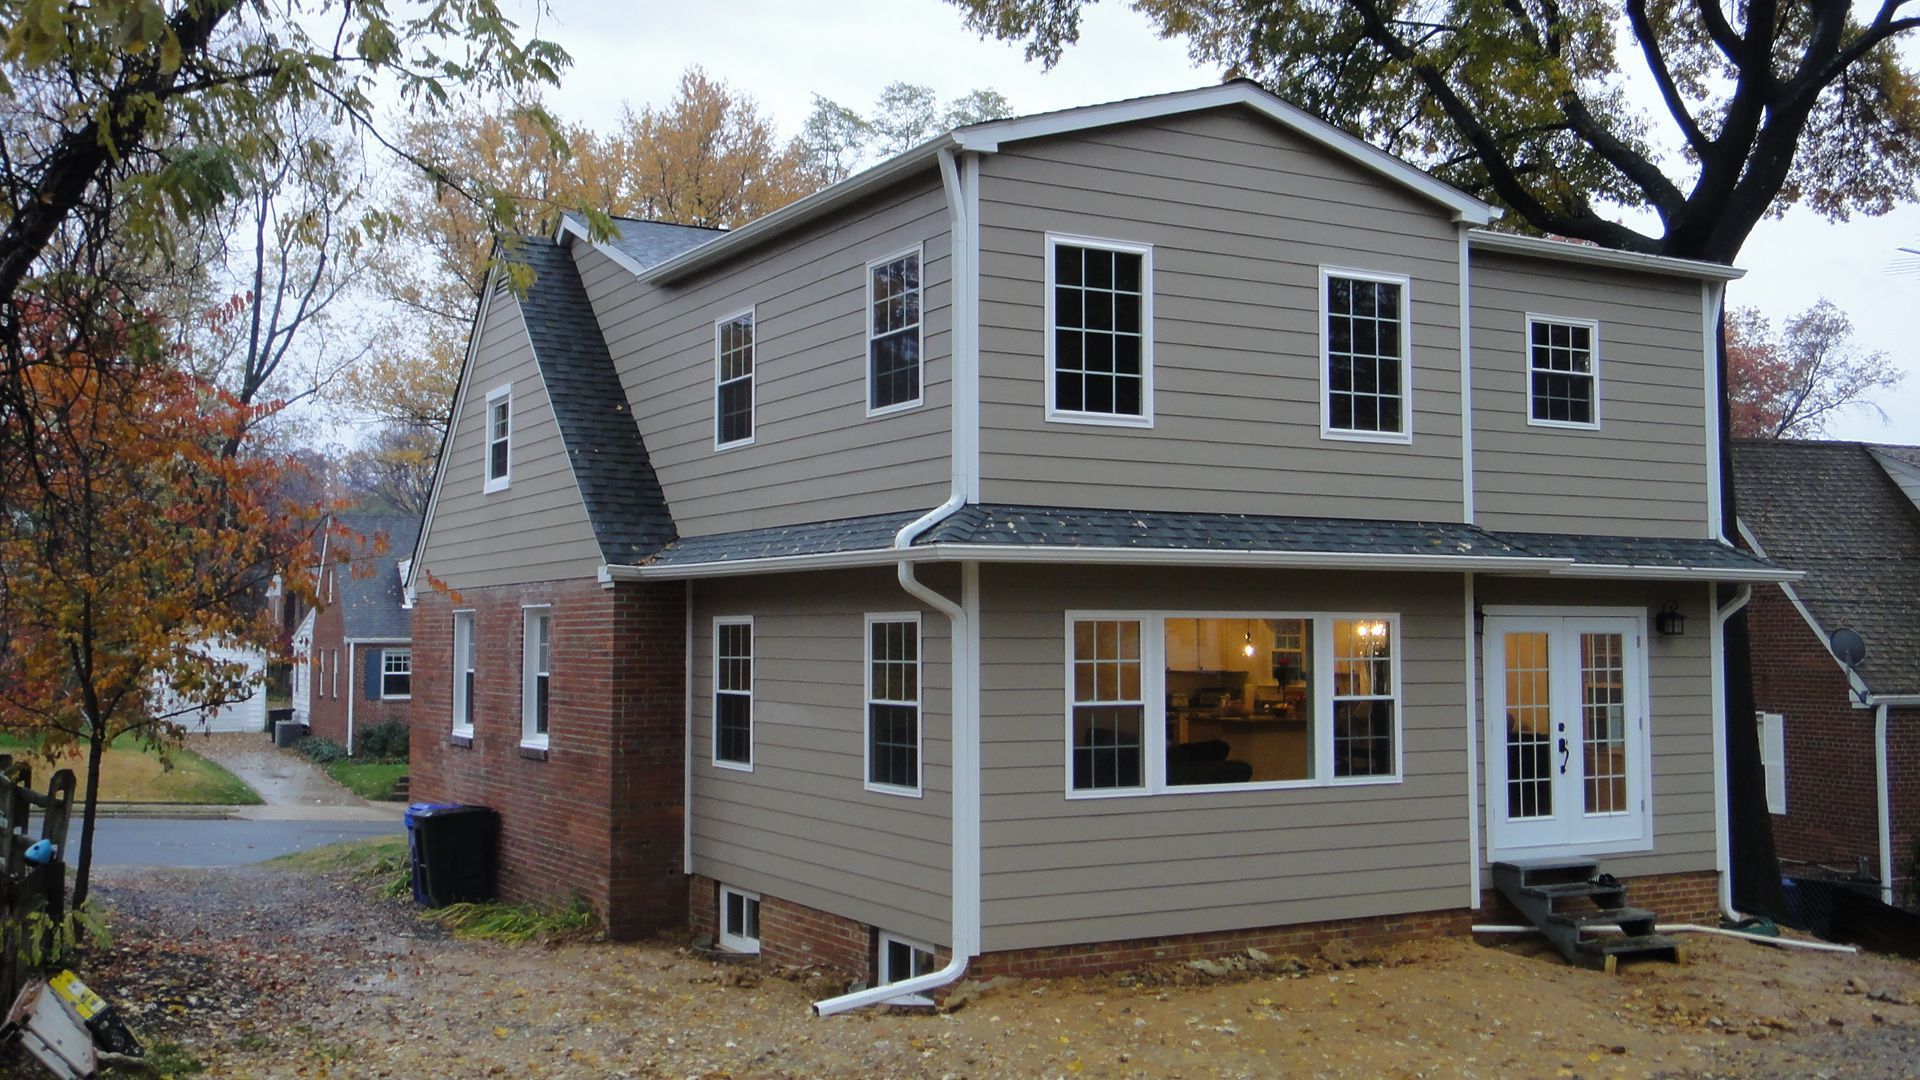 Cape Cod Rear Addition Cook Bros 1 Design Build Remodeling Contractor In Arlington Virginia Cape Cod Style House Cape Cod House Exterior Cape Style Homes